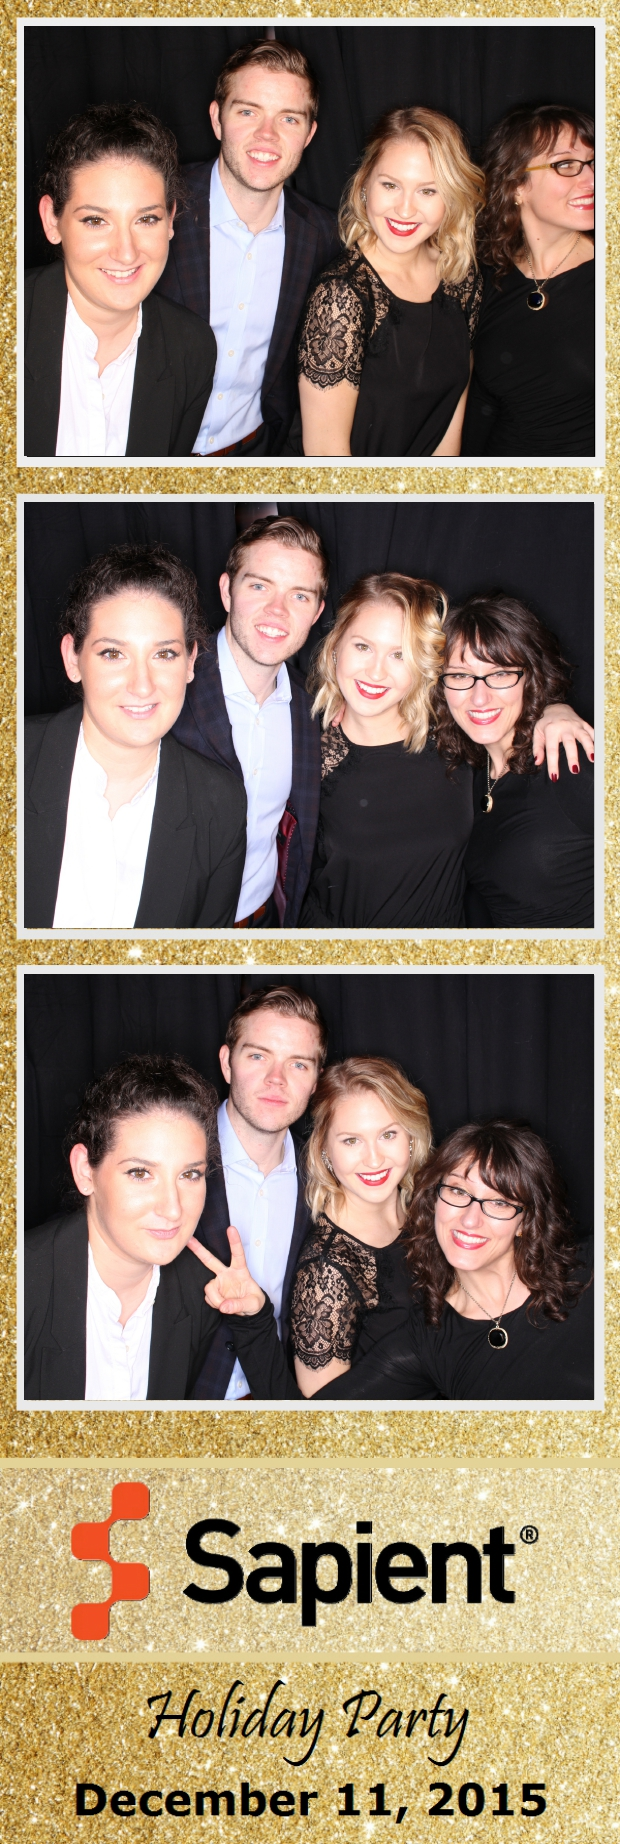 Guest House Events Photo Booth Sapient Holiday Party (31).jpg